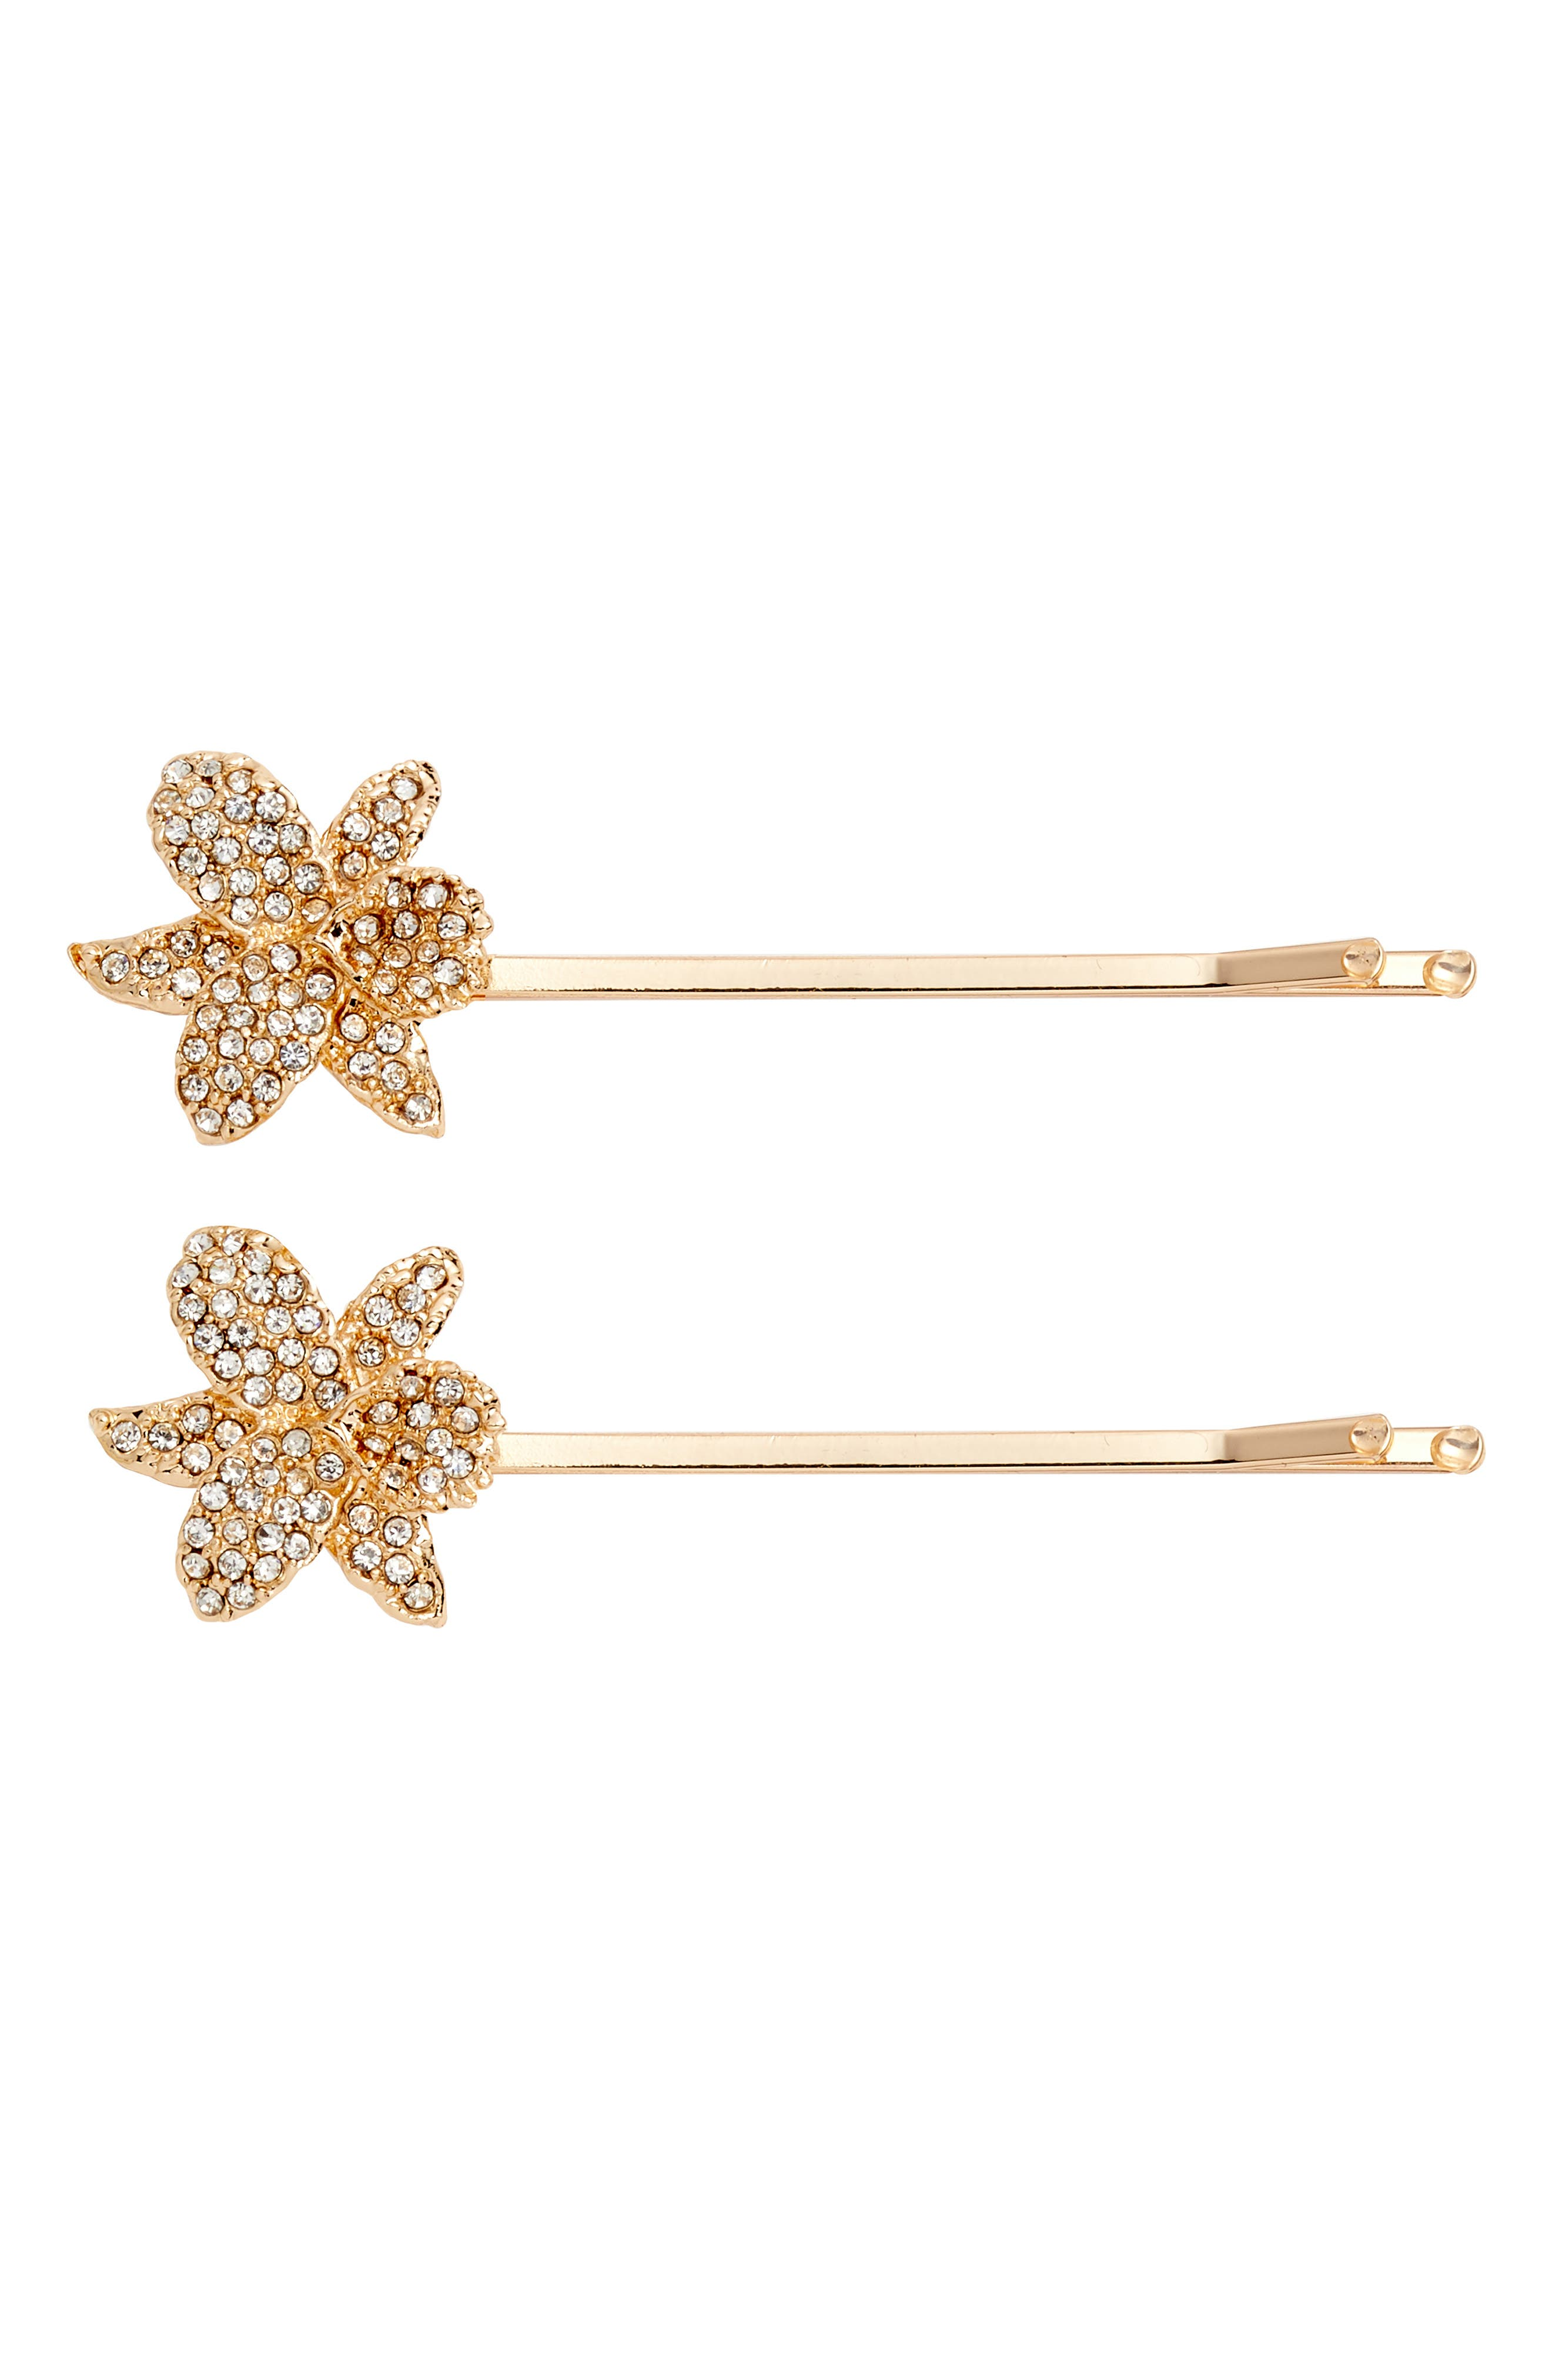 Small Orchid Bobby Pins,                             Main thumbnail 1, color,                             White/ Rose Gold